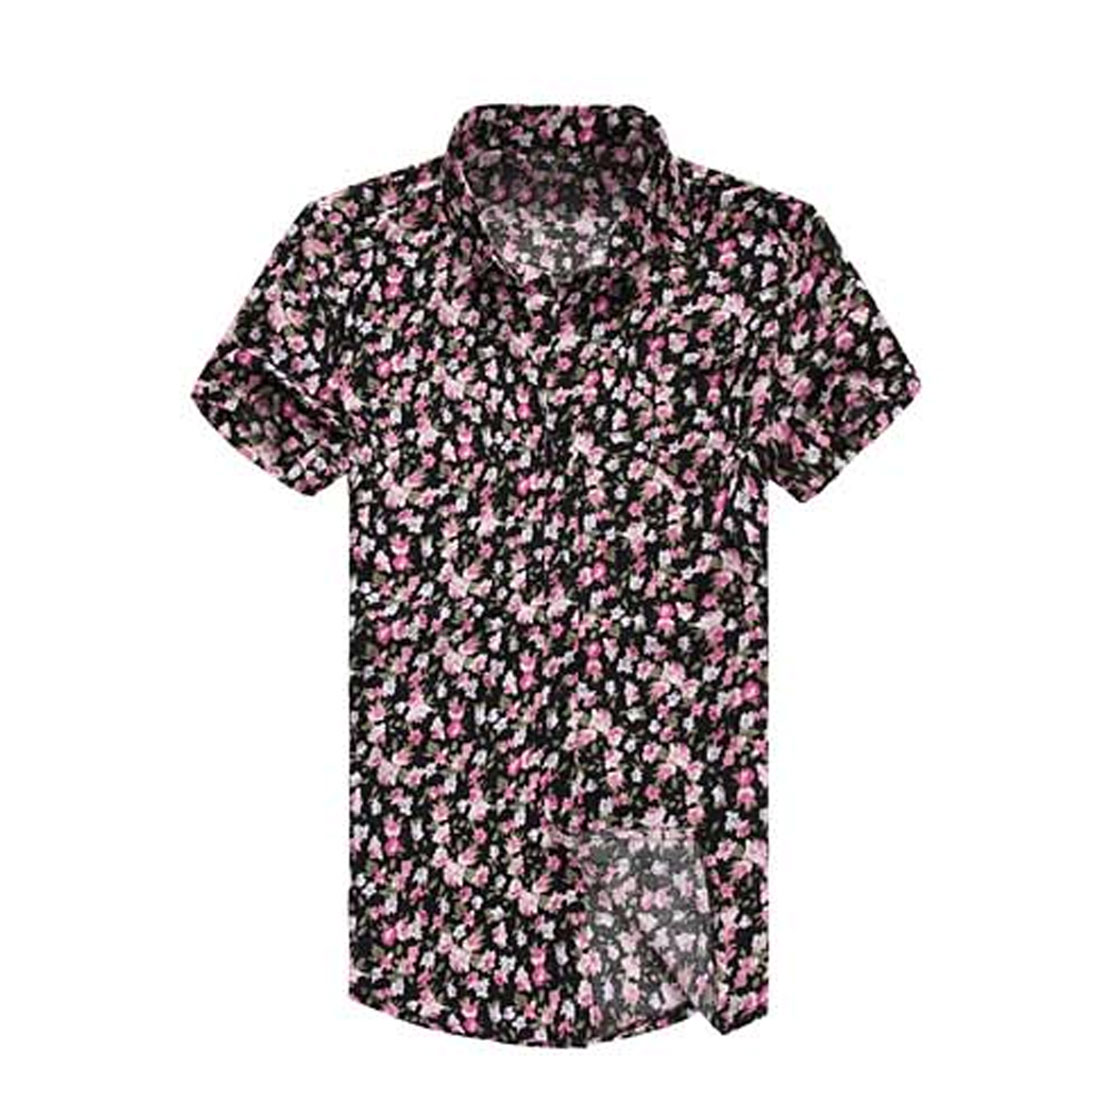 Men Short Sleeve Single Breasted Front Floral Pattern Shirt Pink Green S